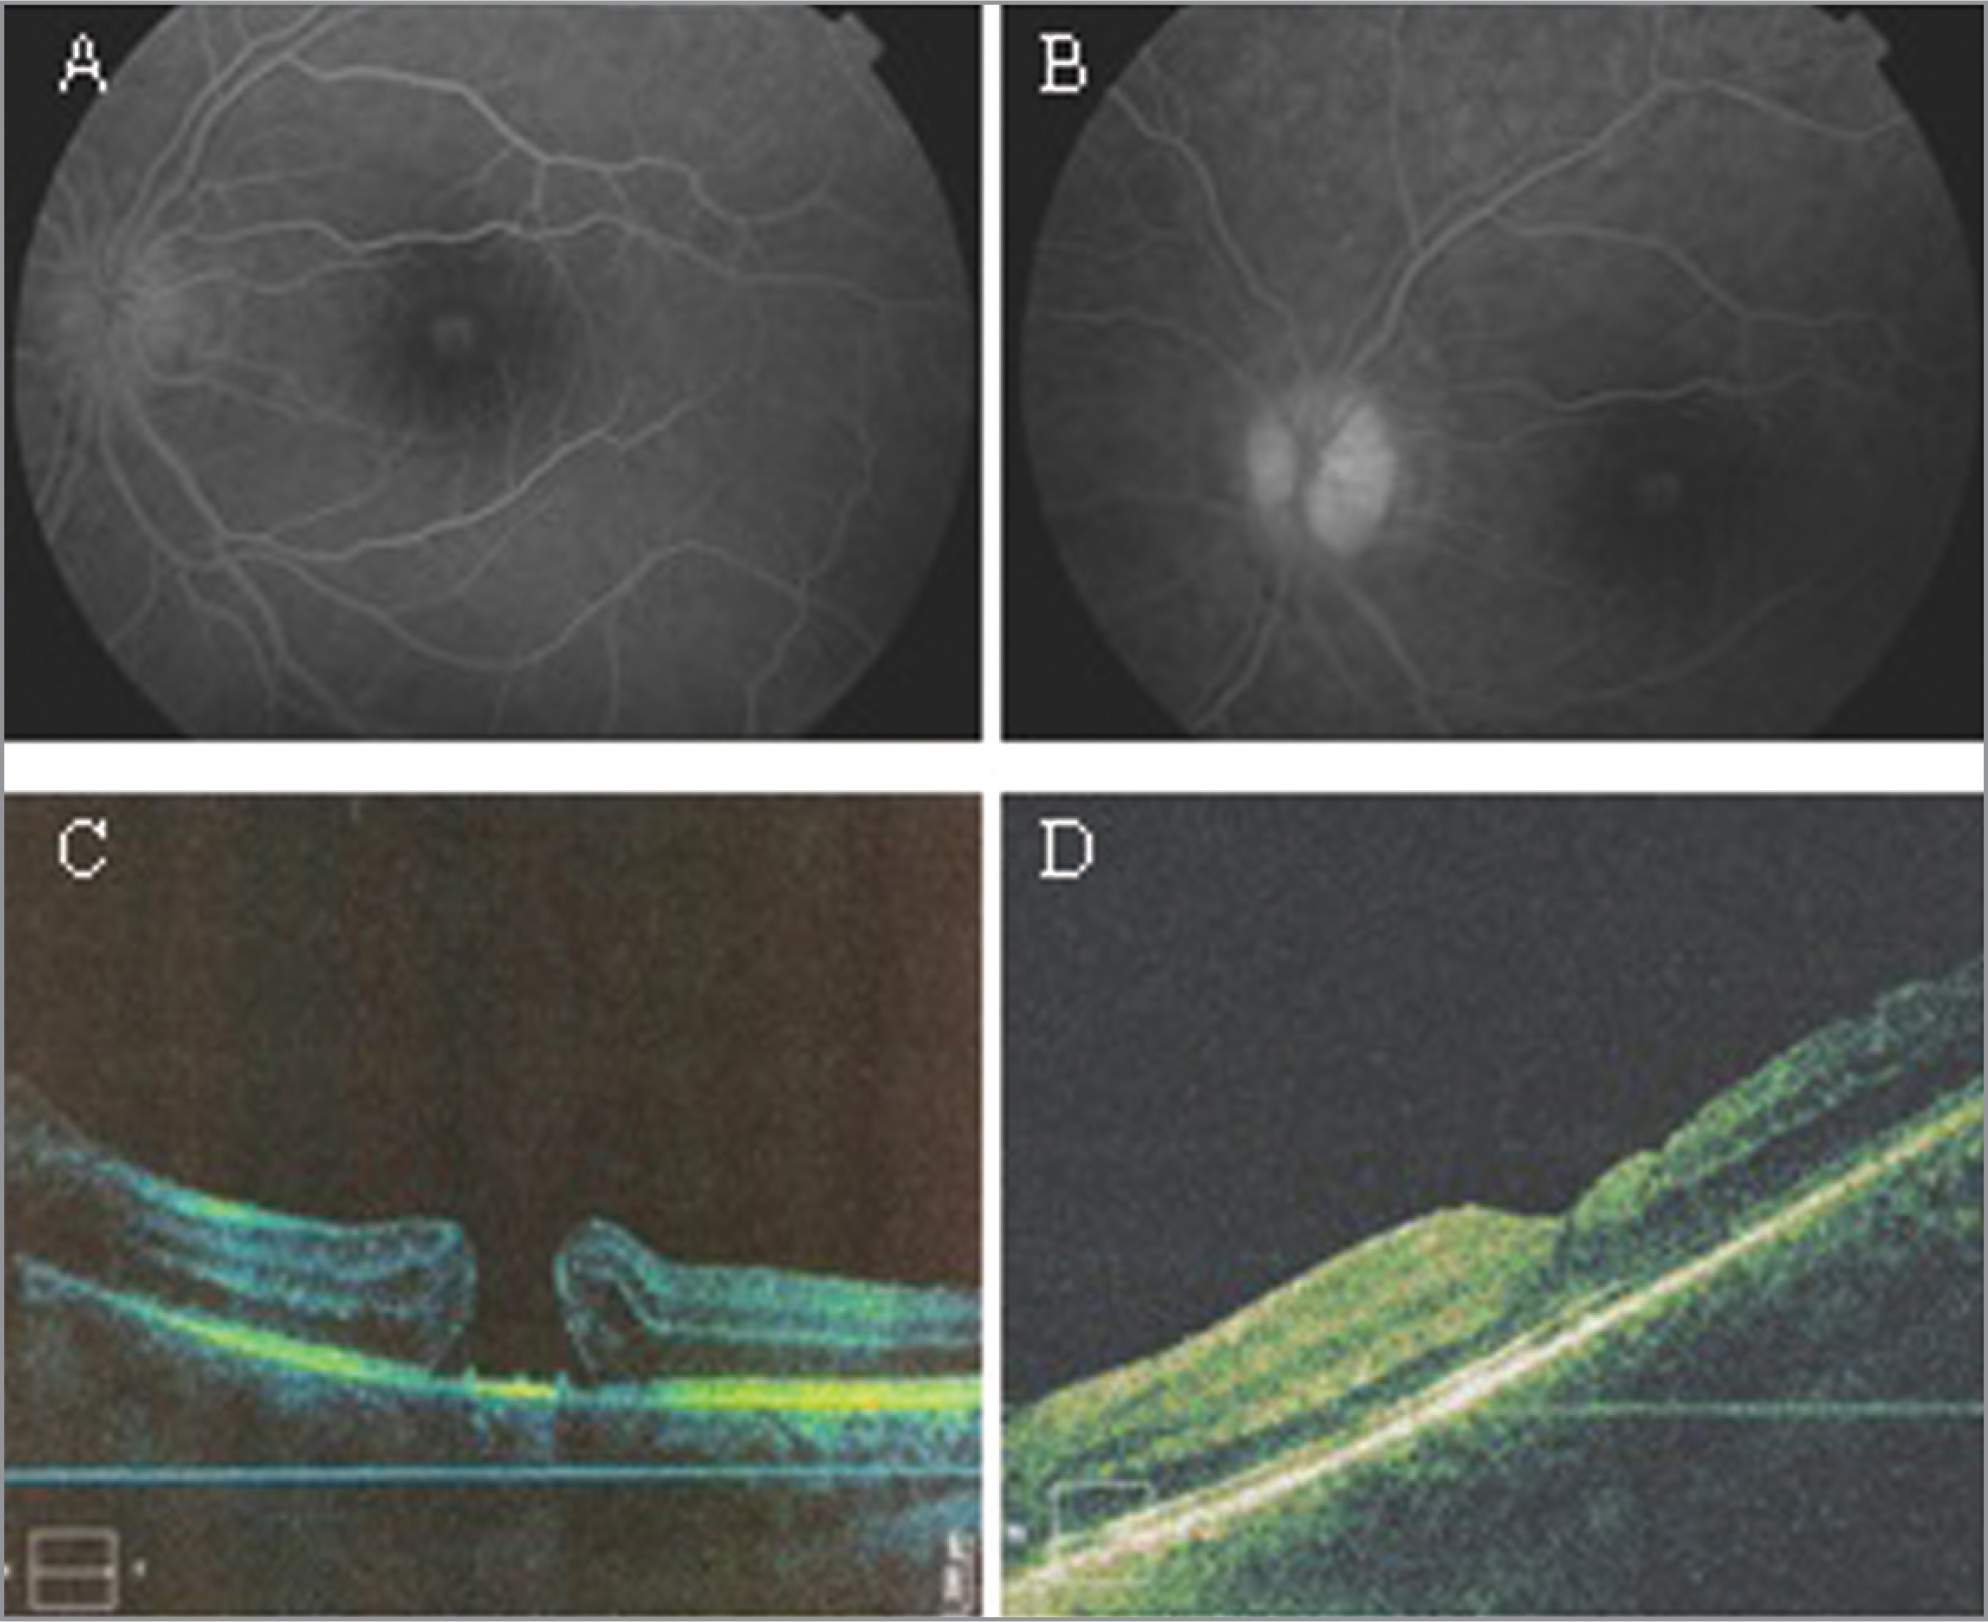 (A–D) Fluorescein angiography of the left eye (OS): A window defect in the foveal zone in early phase of the angiogram (A) that did not expand with time in the late phase (B). Late hyperfluorescence of optic nerve head (B). Macular optical coherence tomography OS: full-thickness macular hole (FTMH) (C), complete anatomic closure of FTMH after surgery (D).